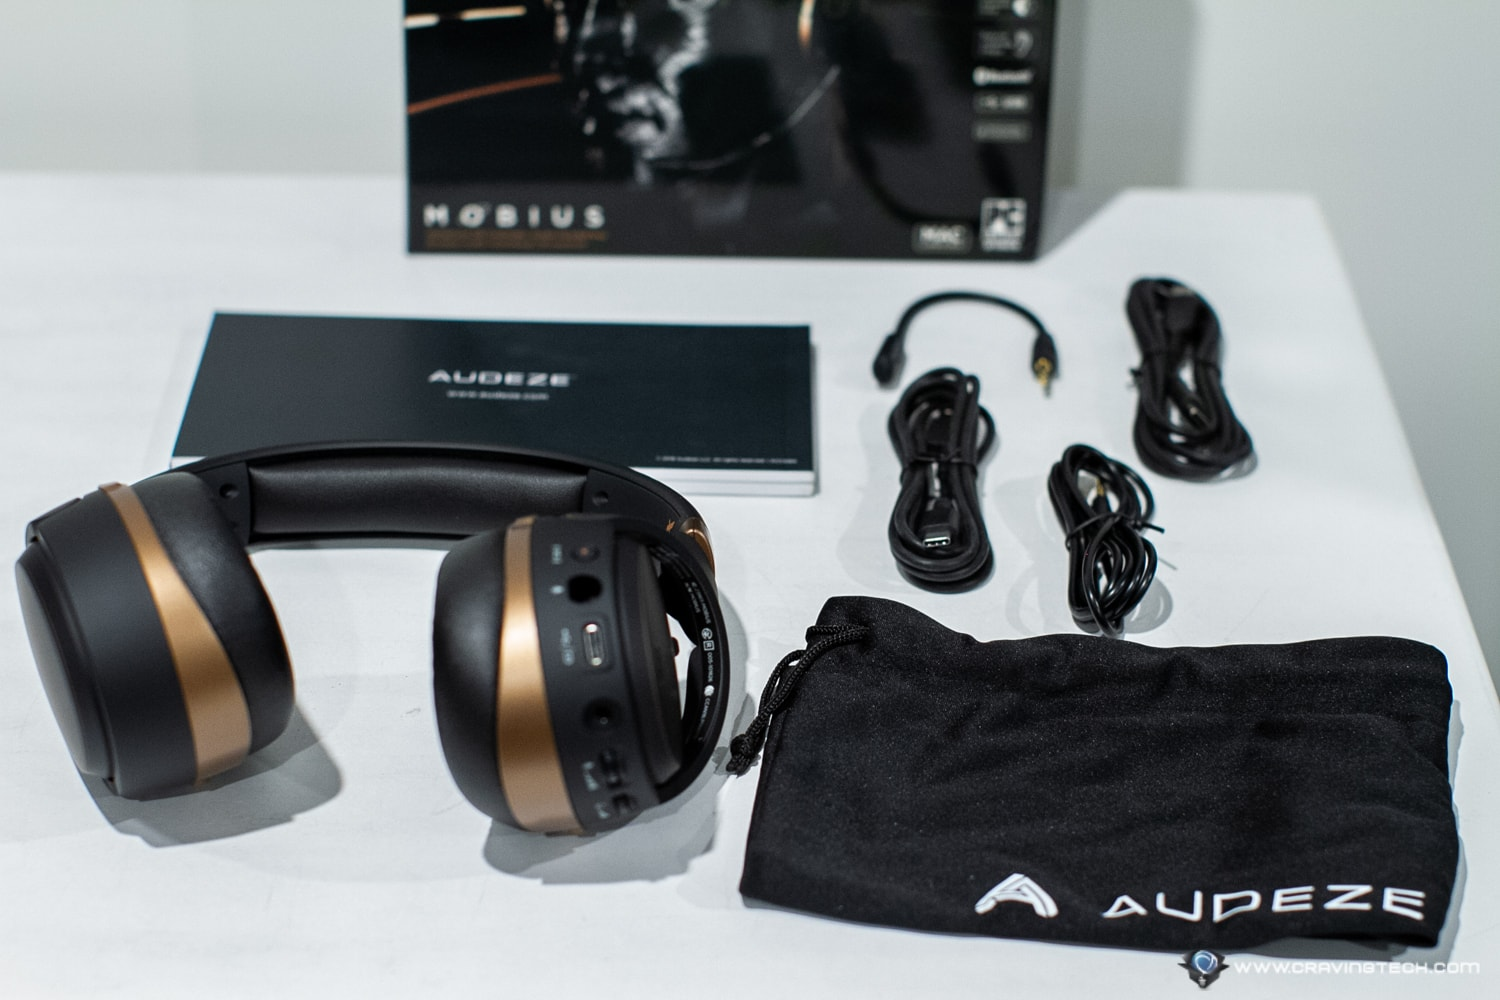 Audeze Mobius Audiophile Gaming Headset Packaging